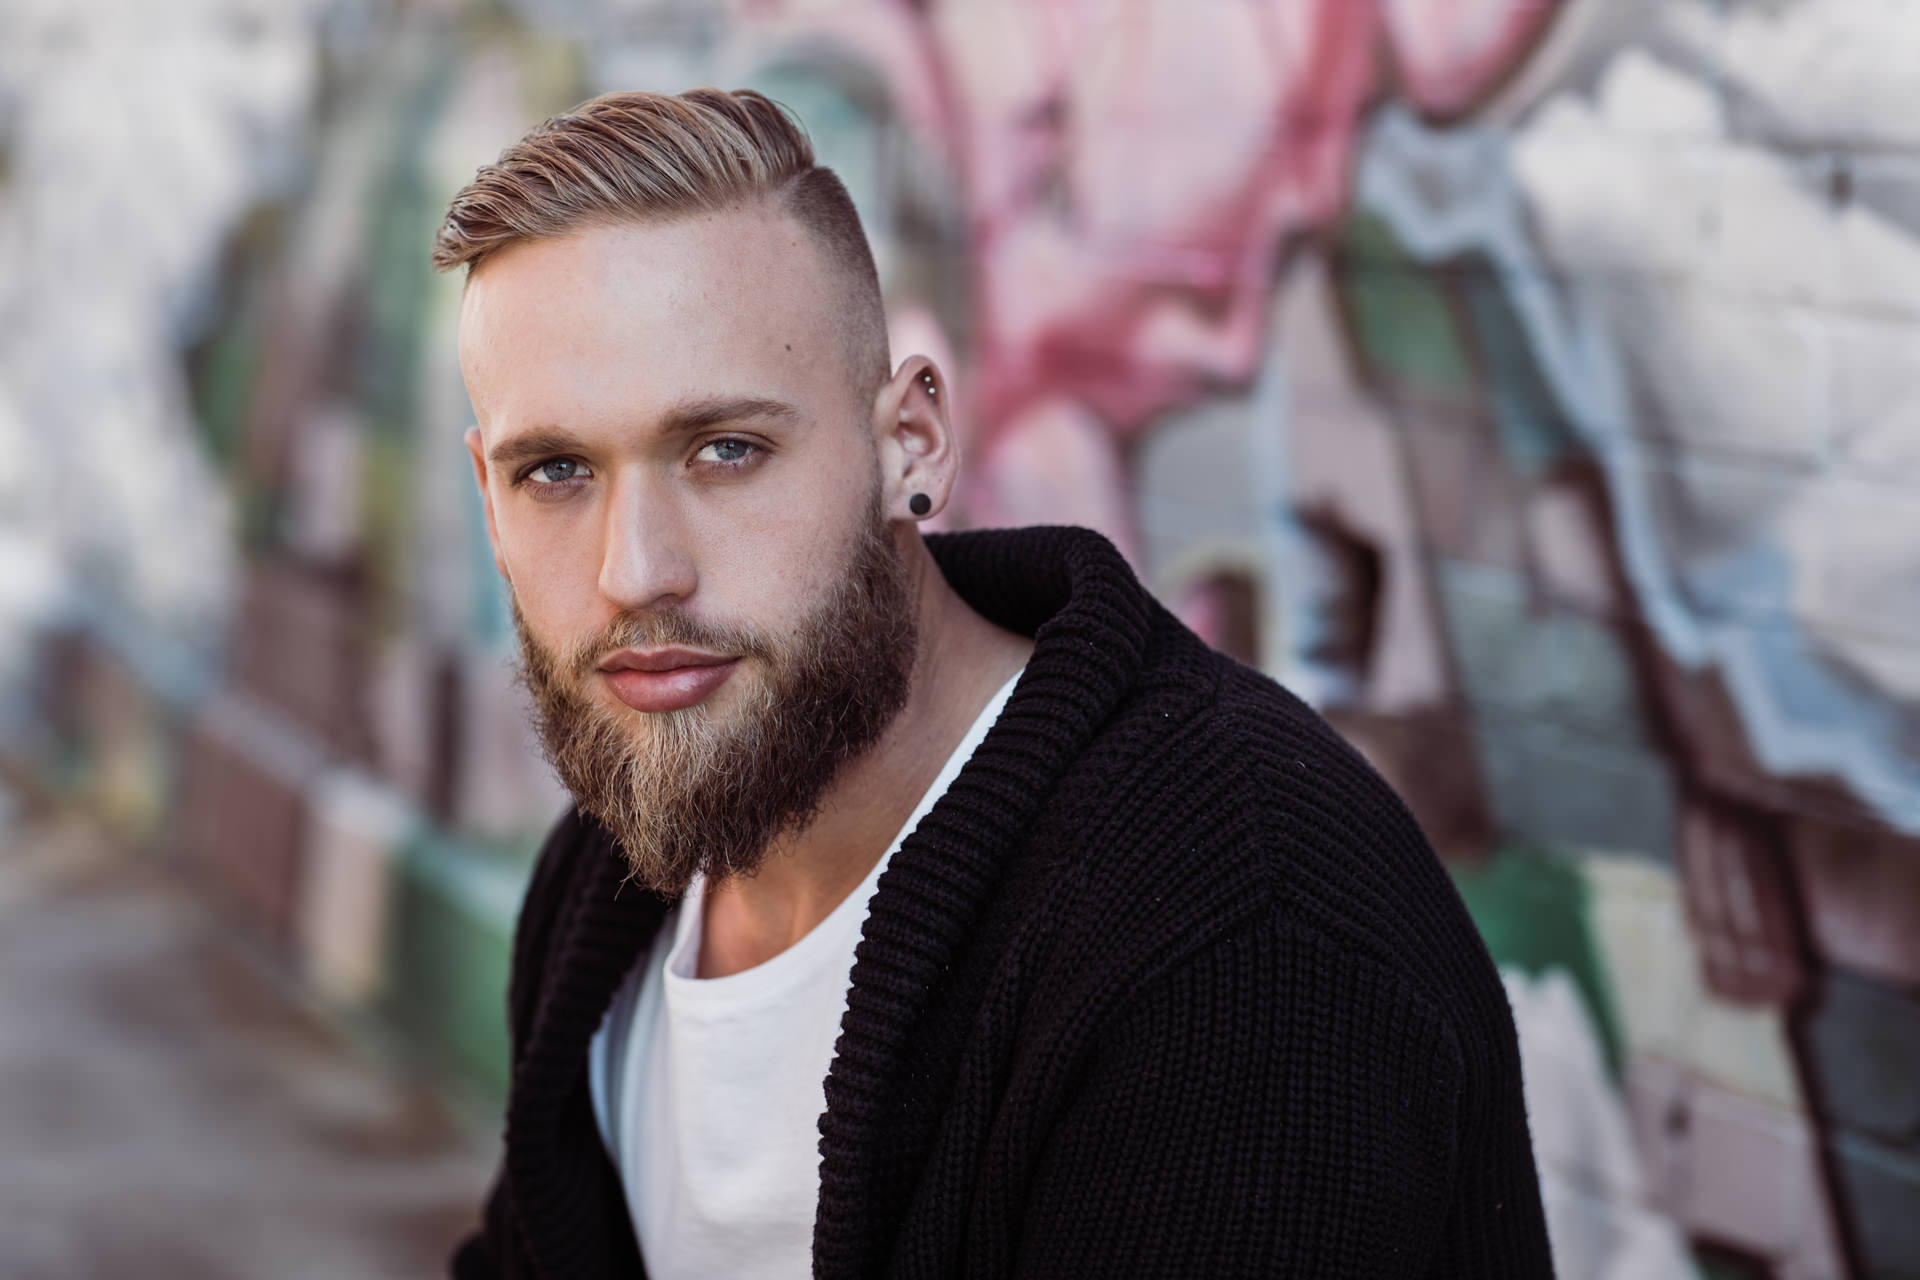 male portrait - fashion and outfit photographer in melbourne